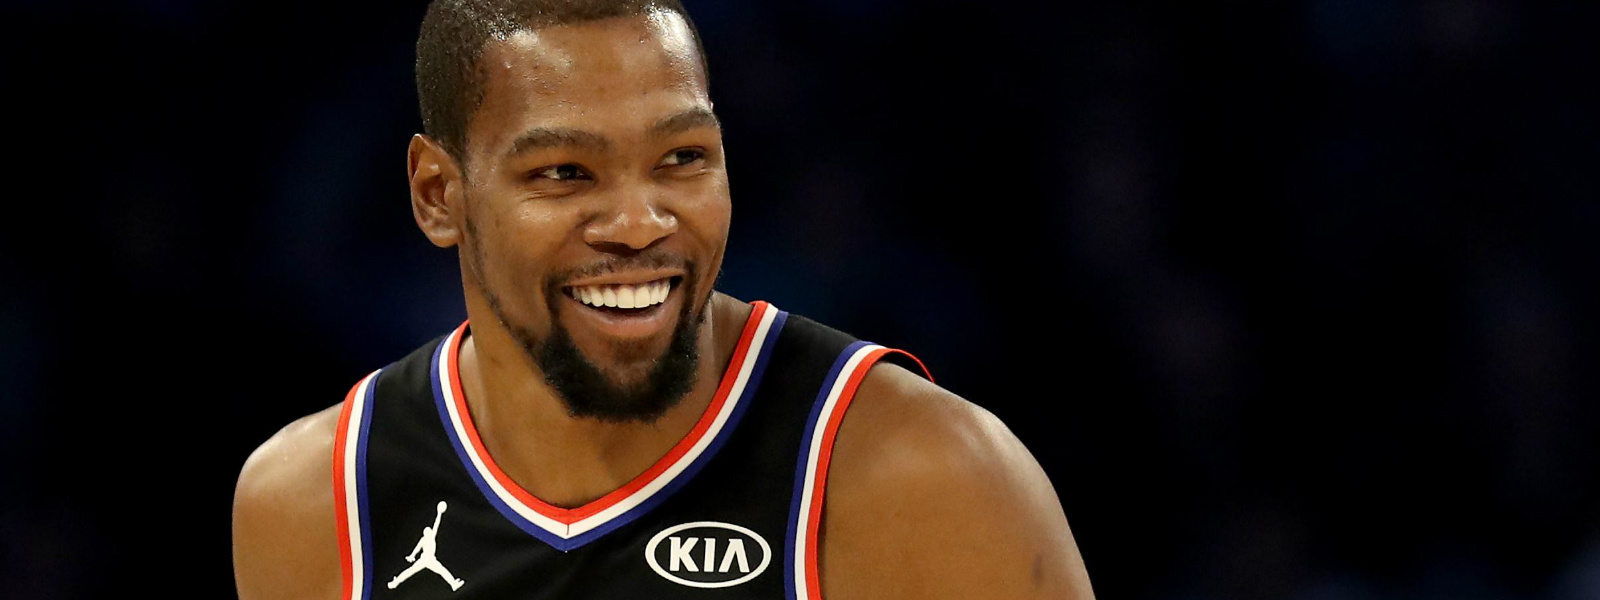 Kevin Durant will join Brooklyn Nets, the two time NBA MVP announces on social media